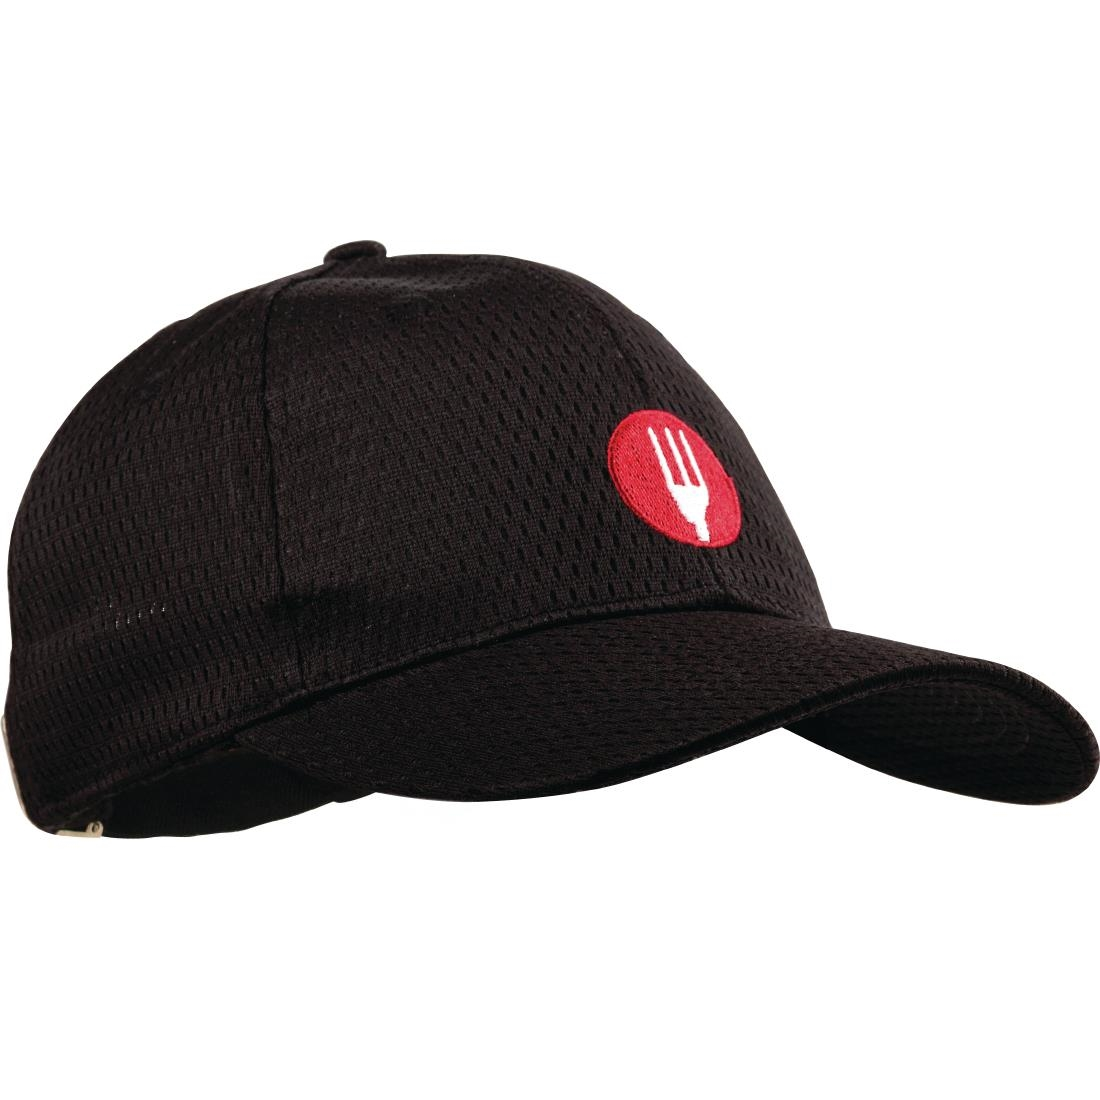 Image of Chef Works Cool Vent Baseball Cap Black